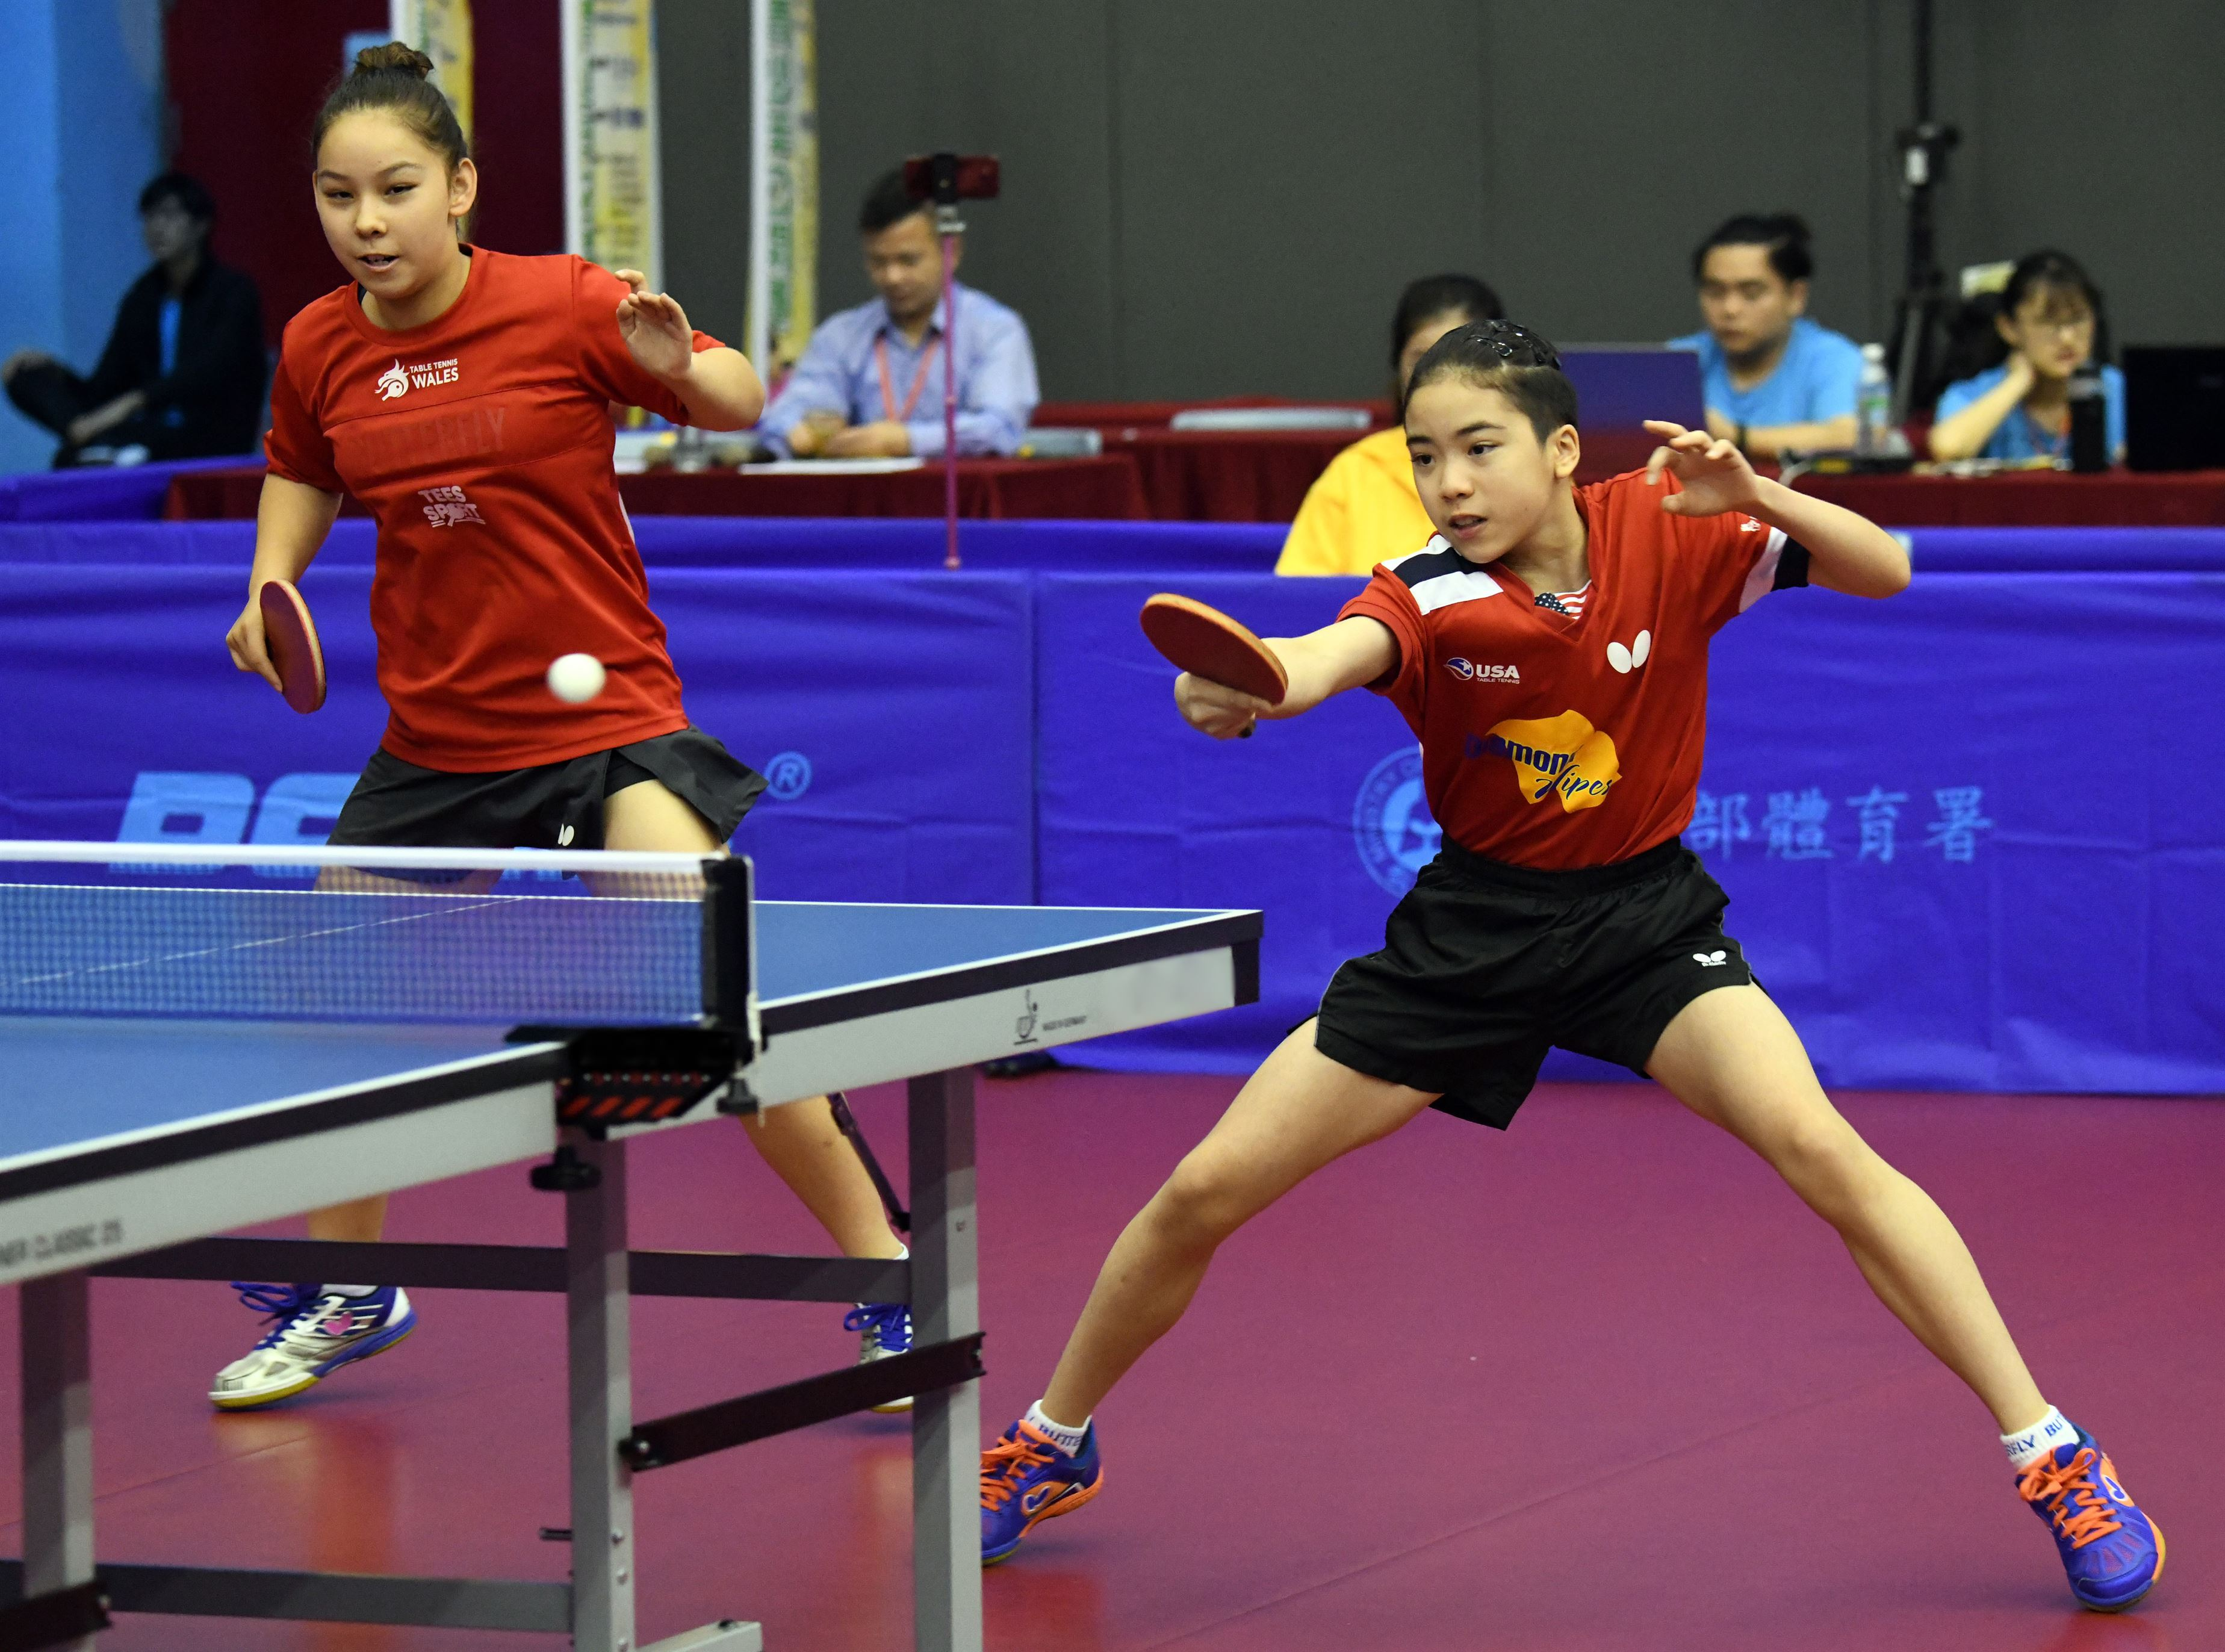 The 2019 Chinese Taipei Junior and Cadet Open